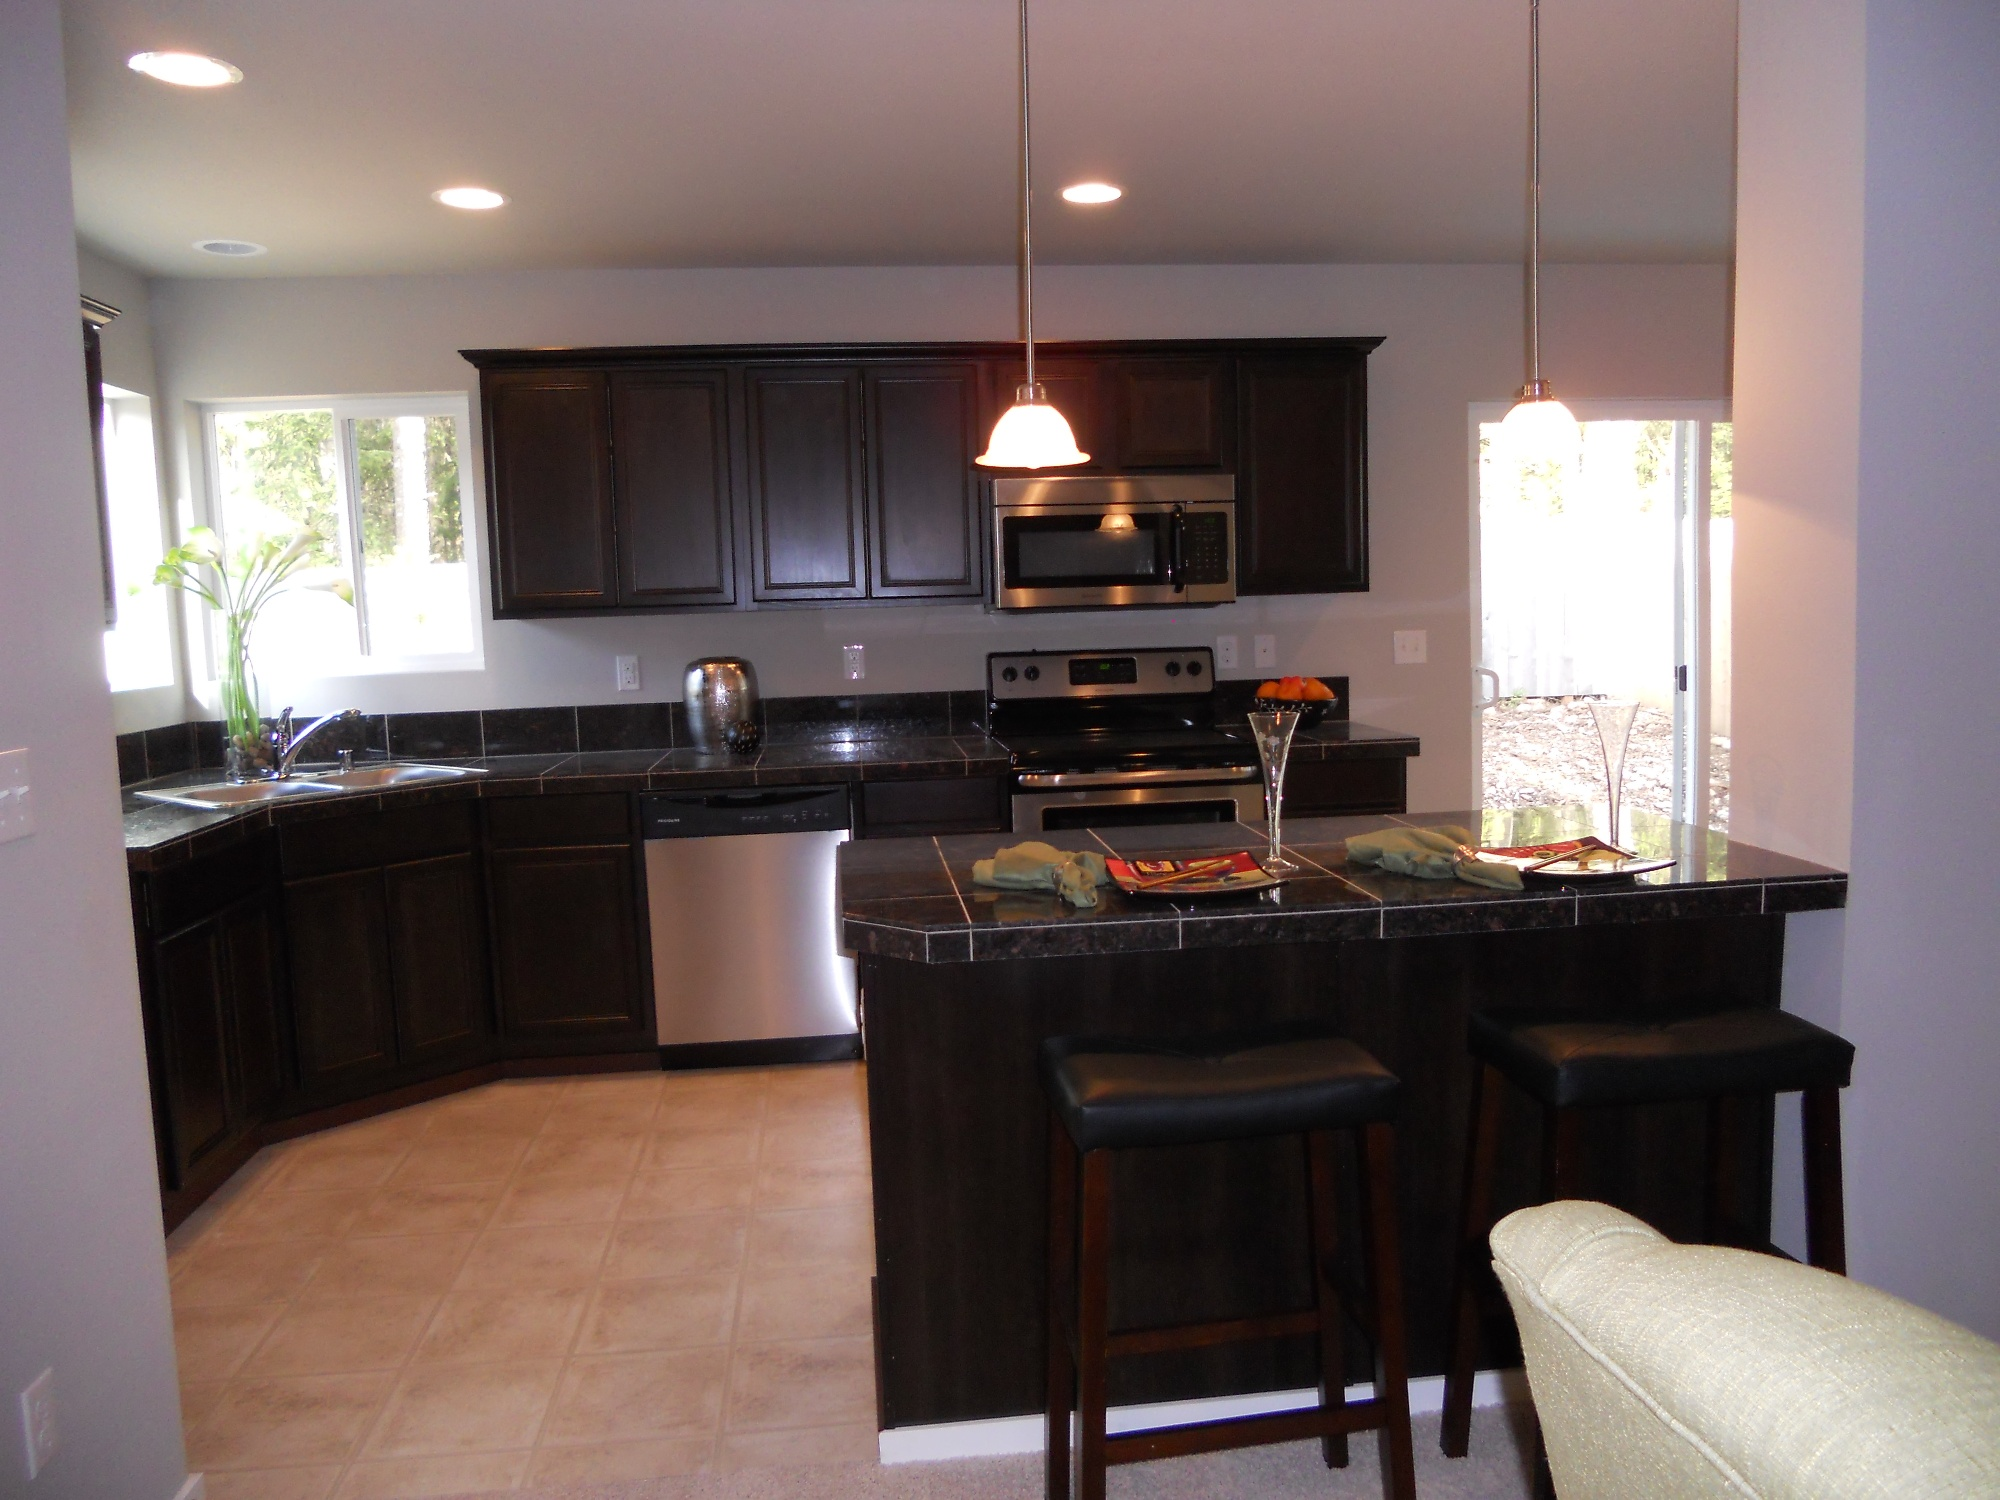 model home new kitchen design new kitchen cabinets Check